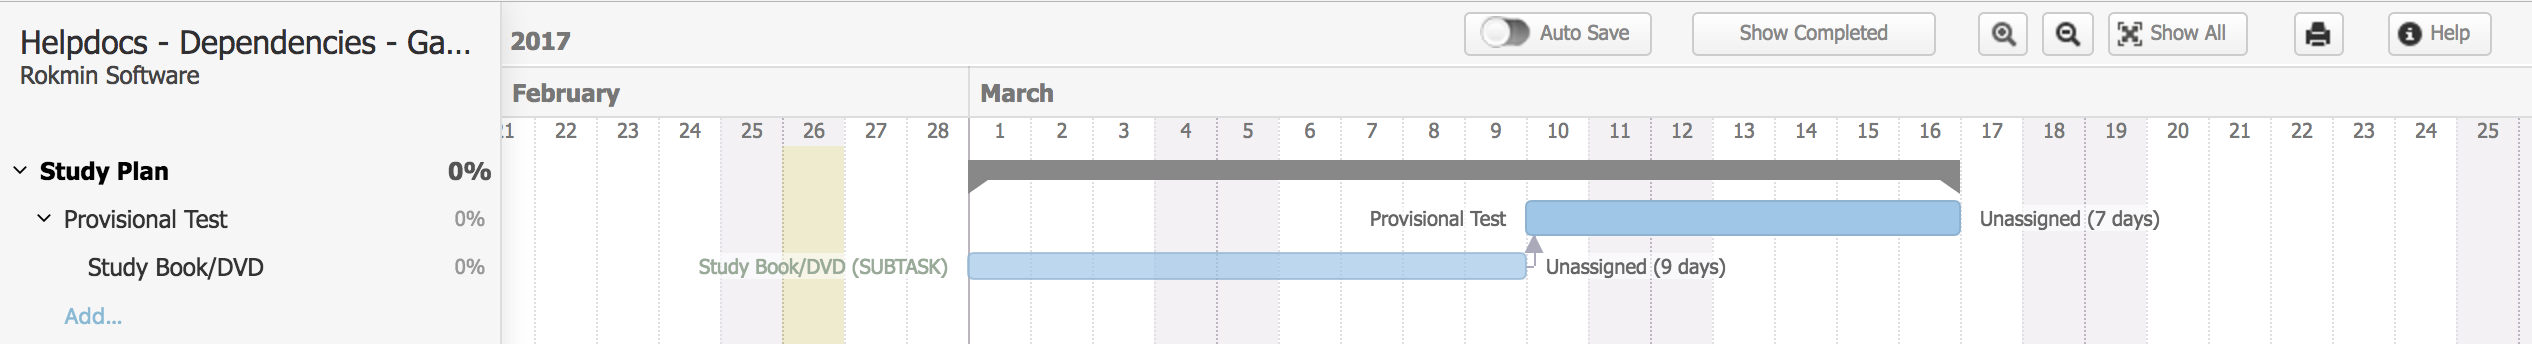 Changing Dates Of Tasks With Dependencies In The Gantt Chart